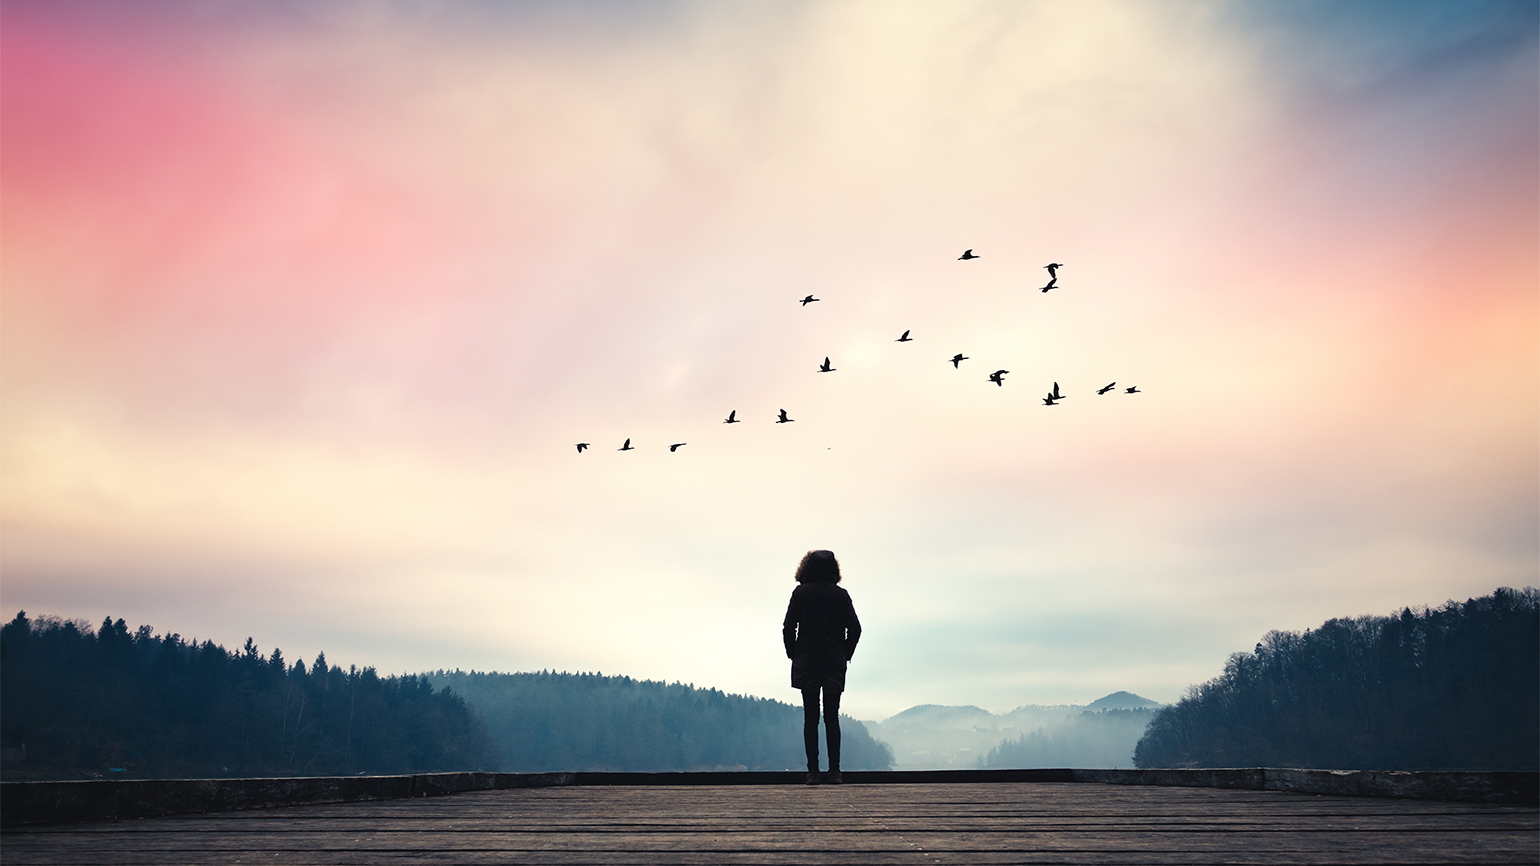 A woman gazes out at the sunrise over a lake